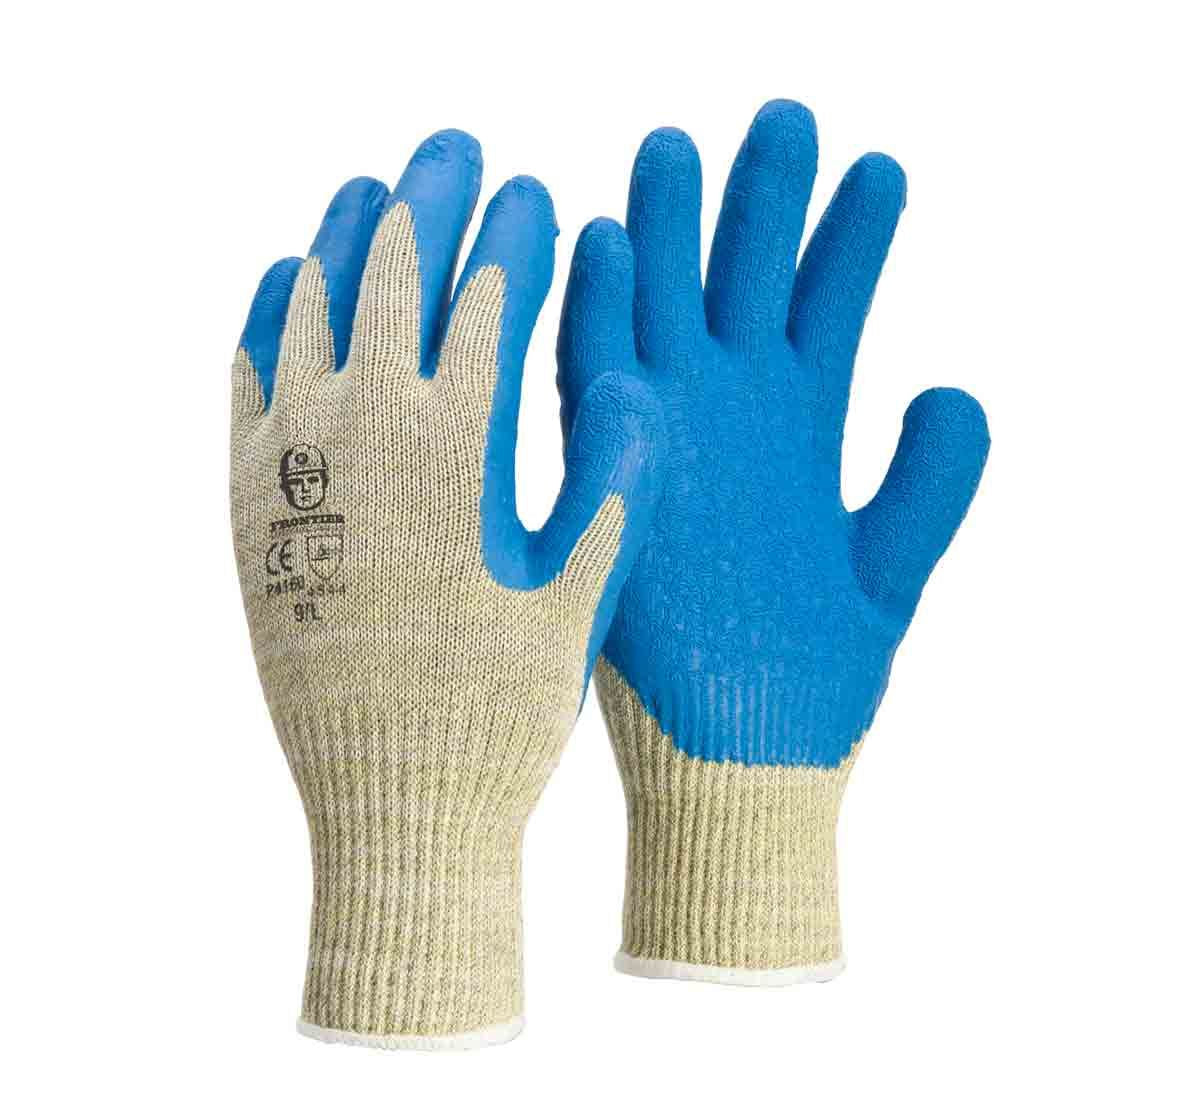 Frontier Safeguard Cut & Puncture resistant gloves